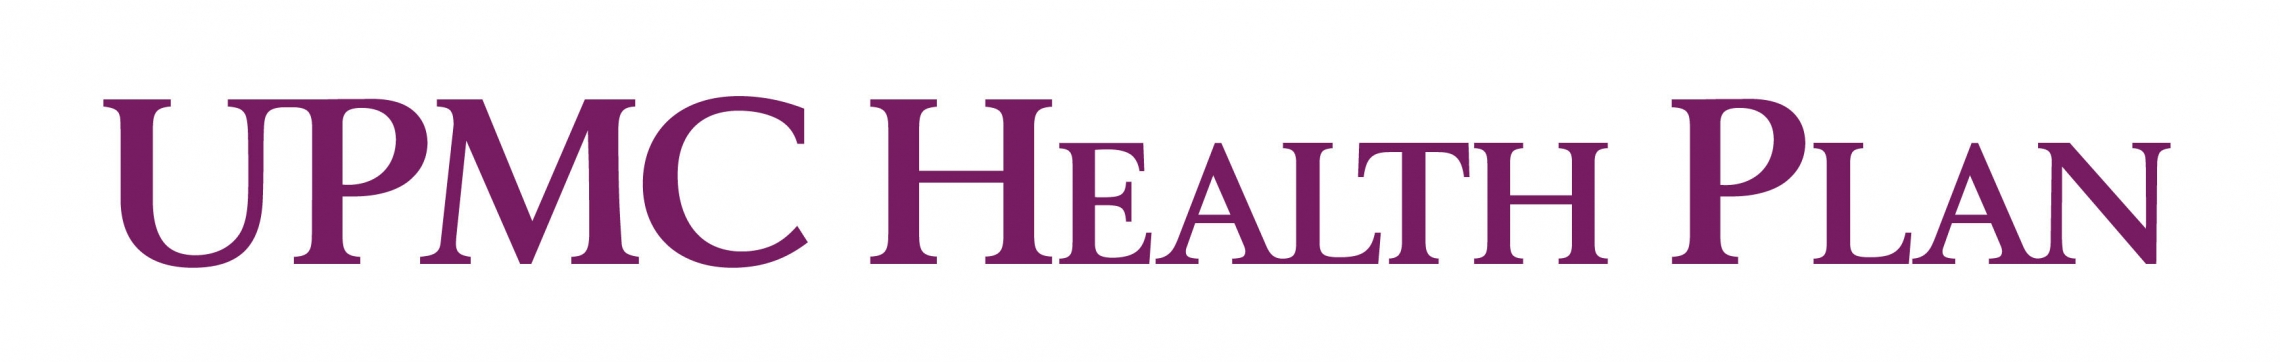 UPMC Health Plan logo